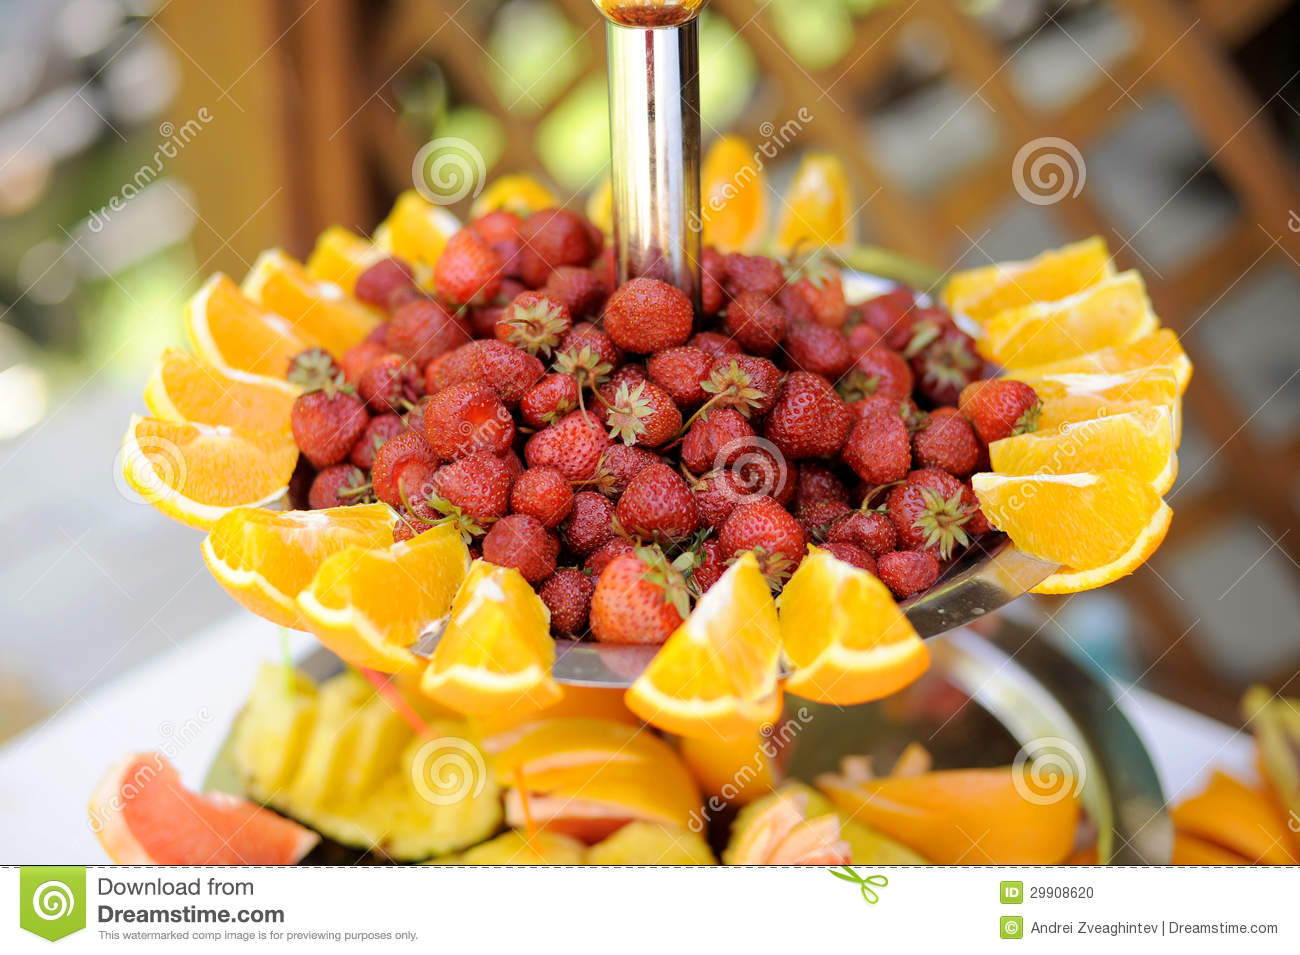 Fruit Tray stock photo Image of buffet center industry  : tray strawberry orange slices table 29908620 from www.dreamstime.com size 1300 x 955 jpeg 175kB